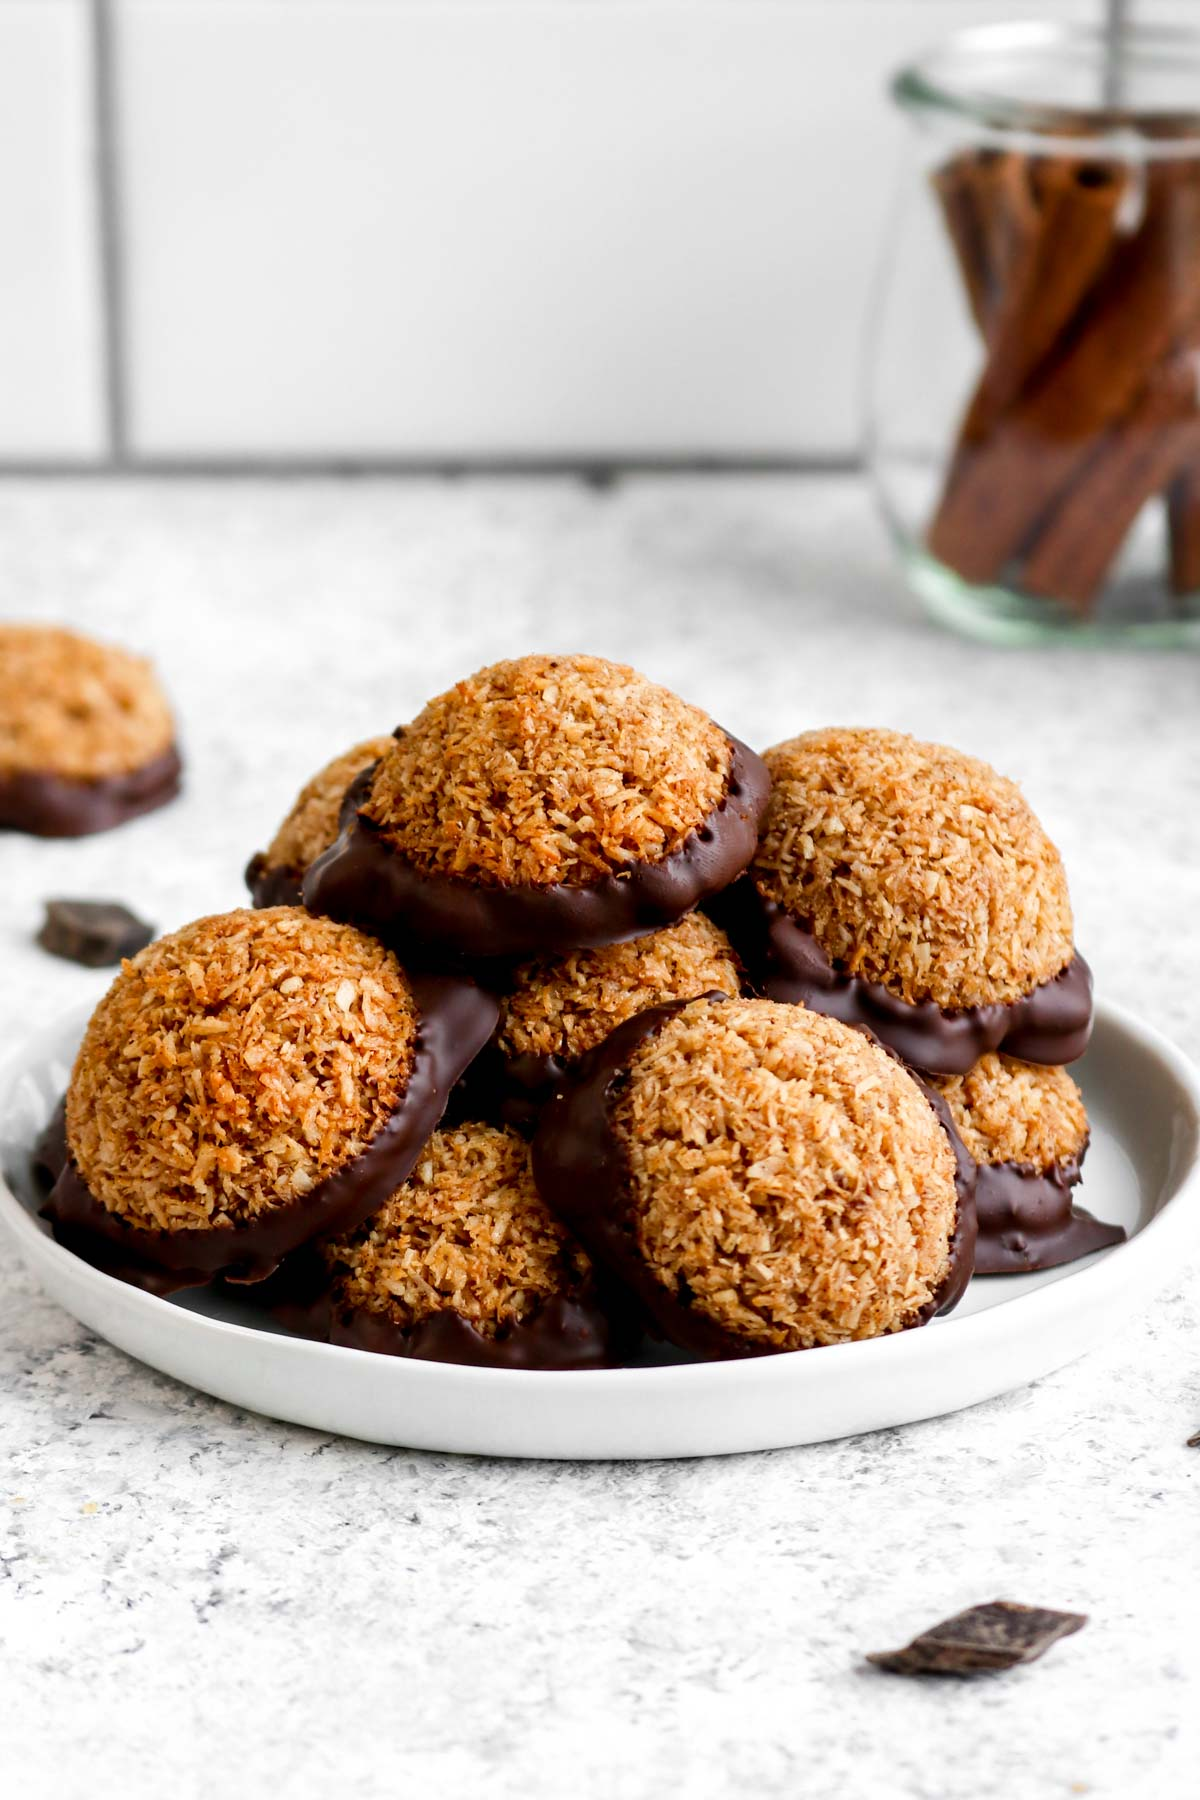 Pumpkin spice macaroon cookies stacked on a plate with chocolate.